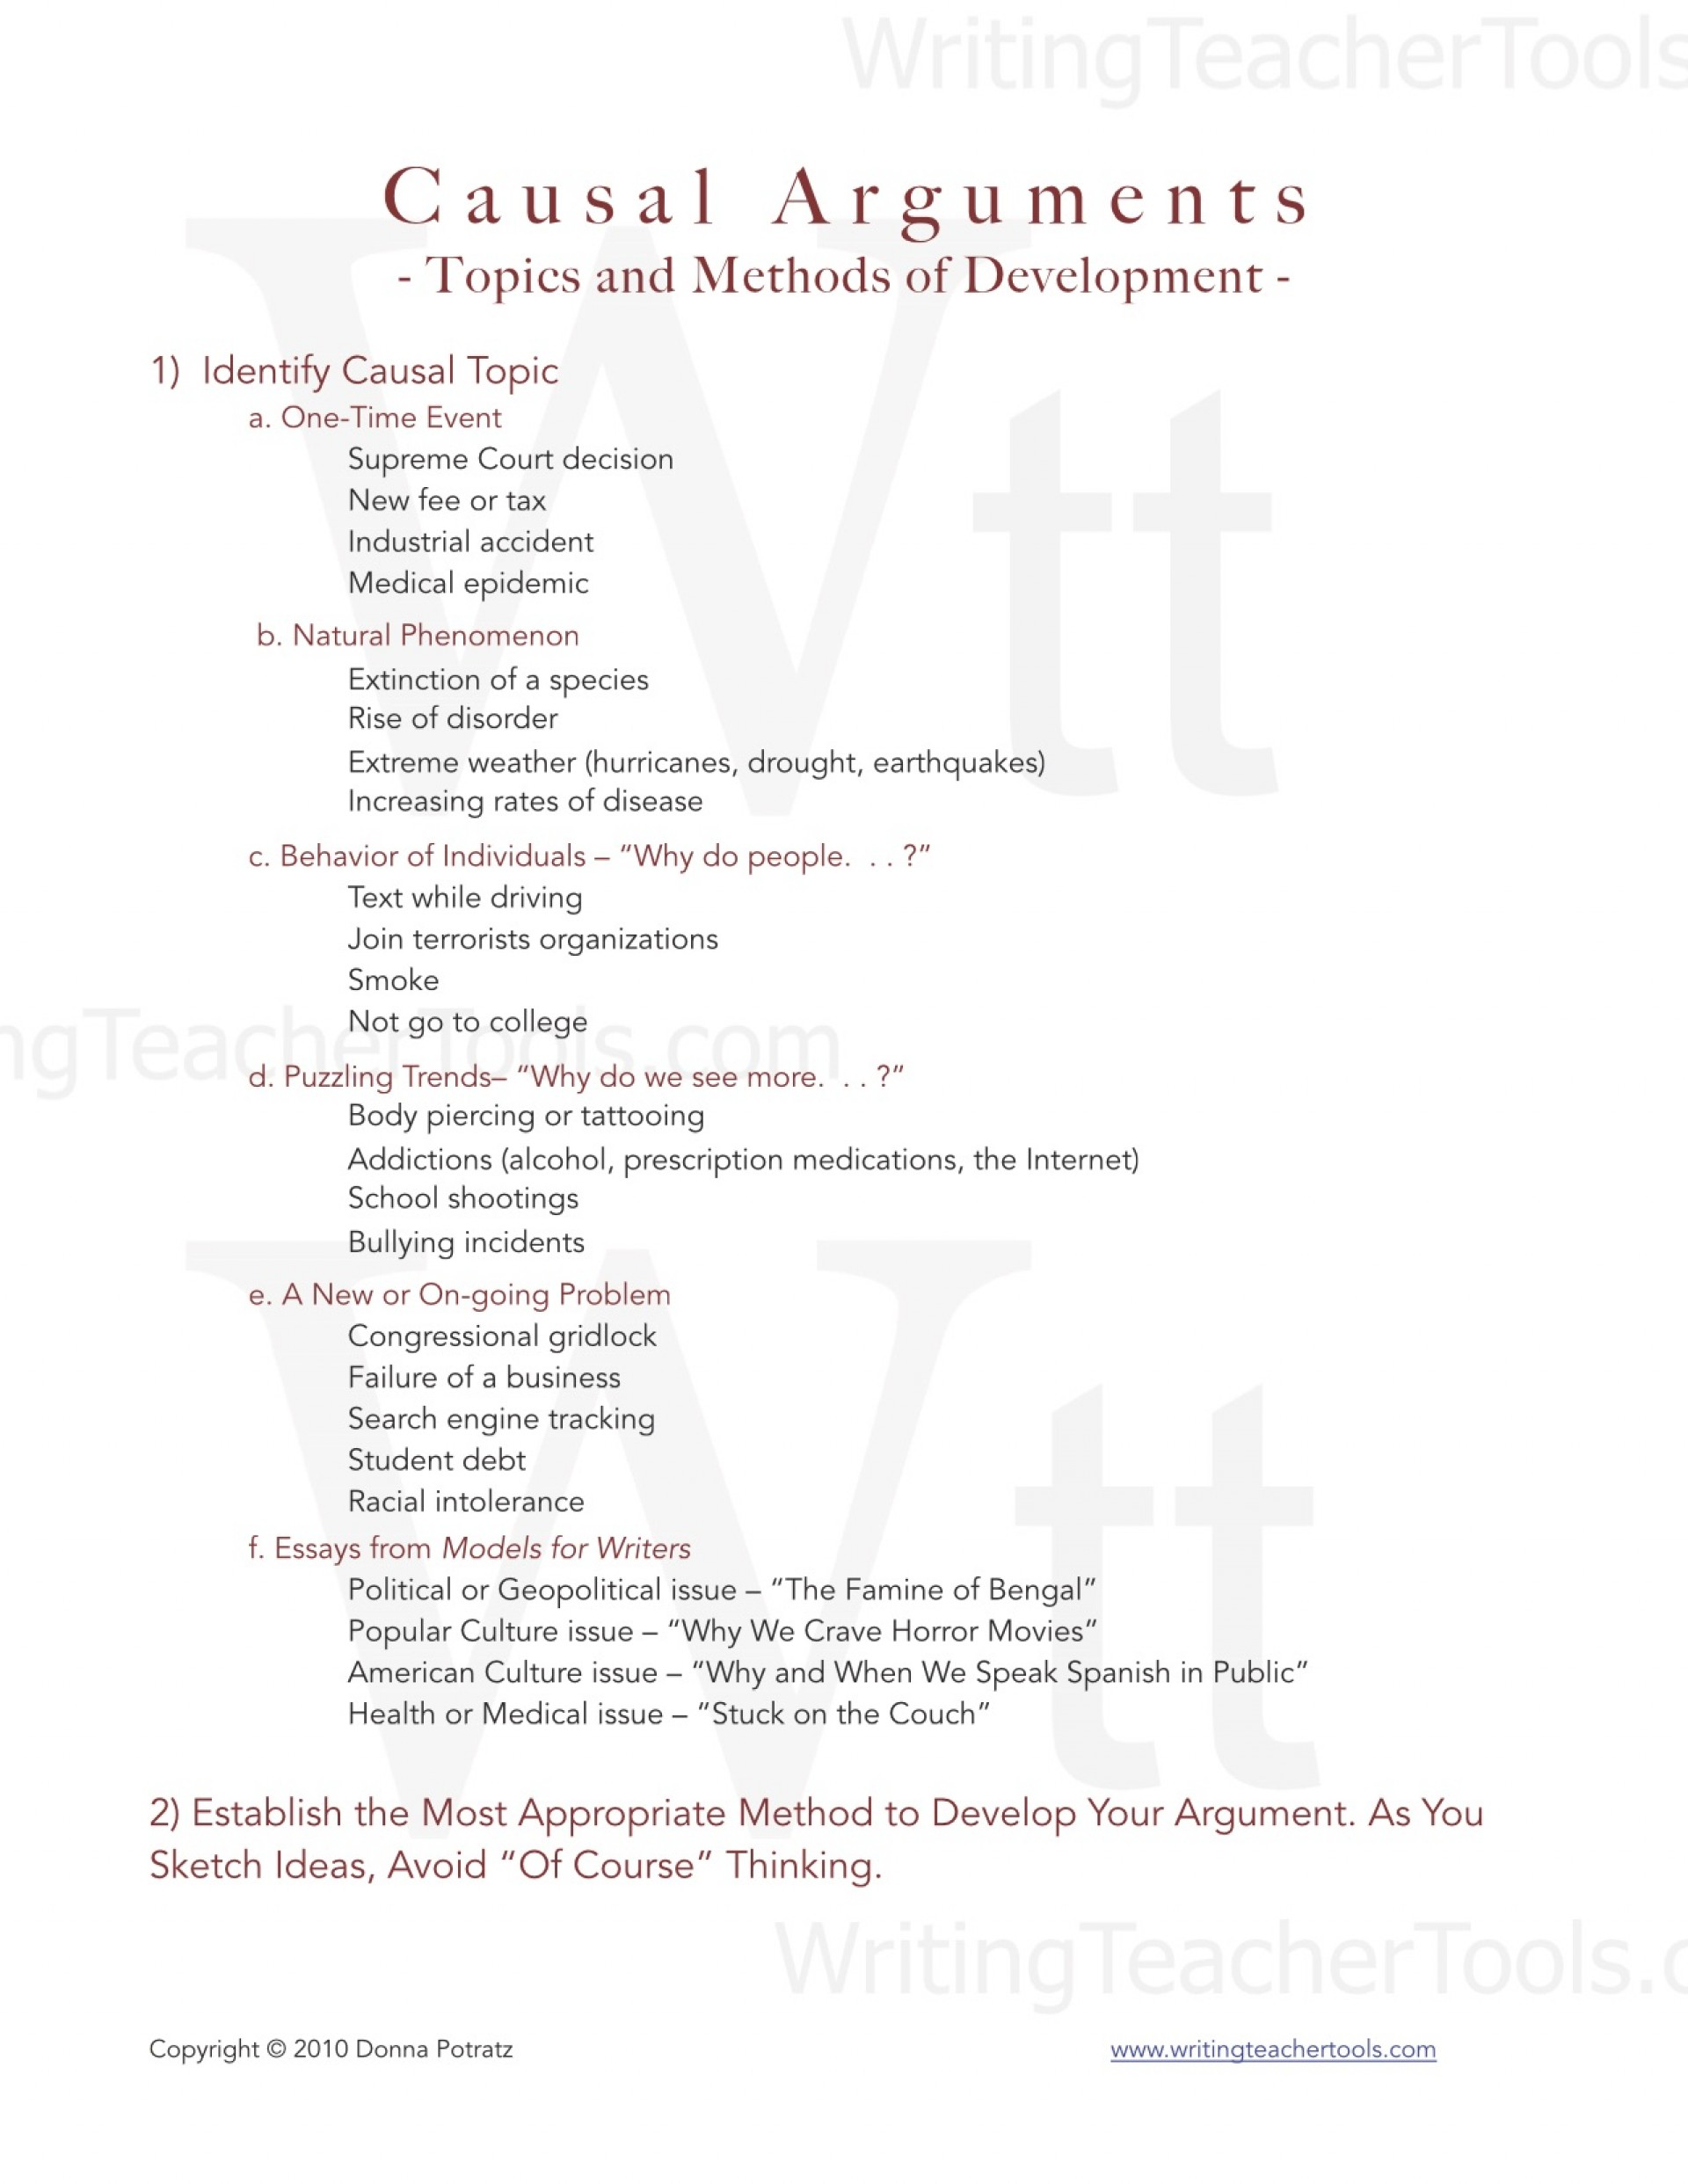 005 Essay Example Evaluative Causal Topics For Argument And Methods Of Develo Evaluation Marvelous Debate Interesting Persuasive Questions 1920